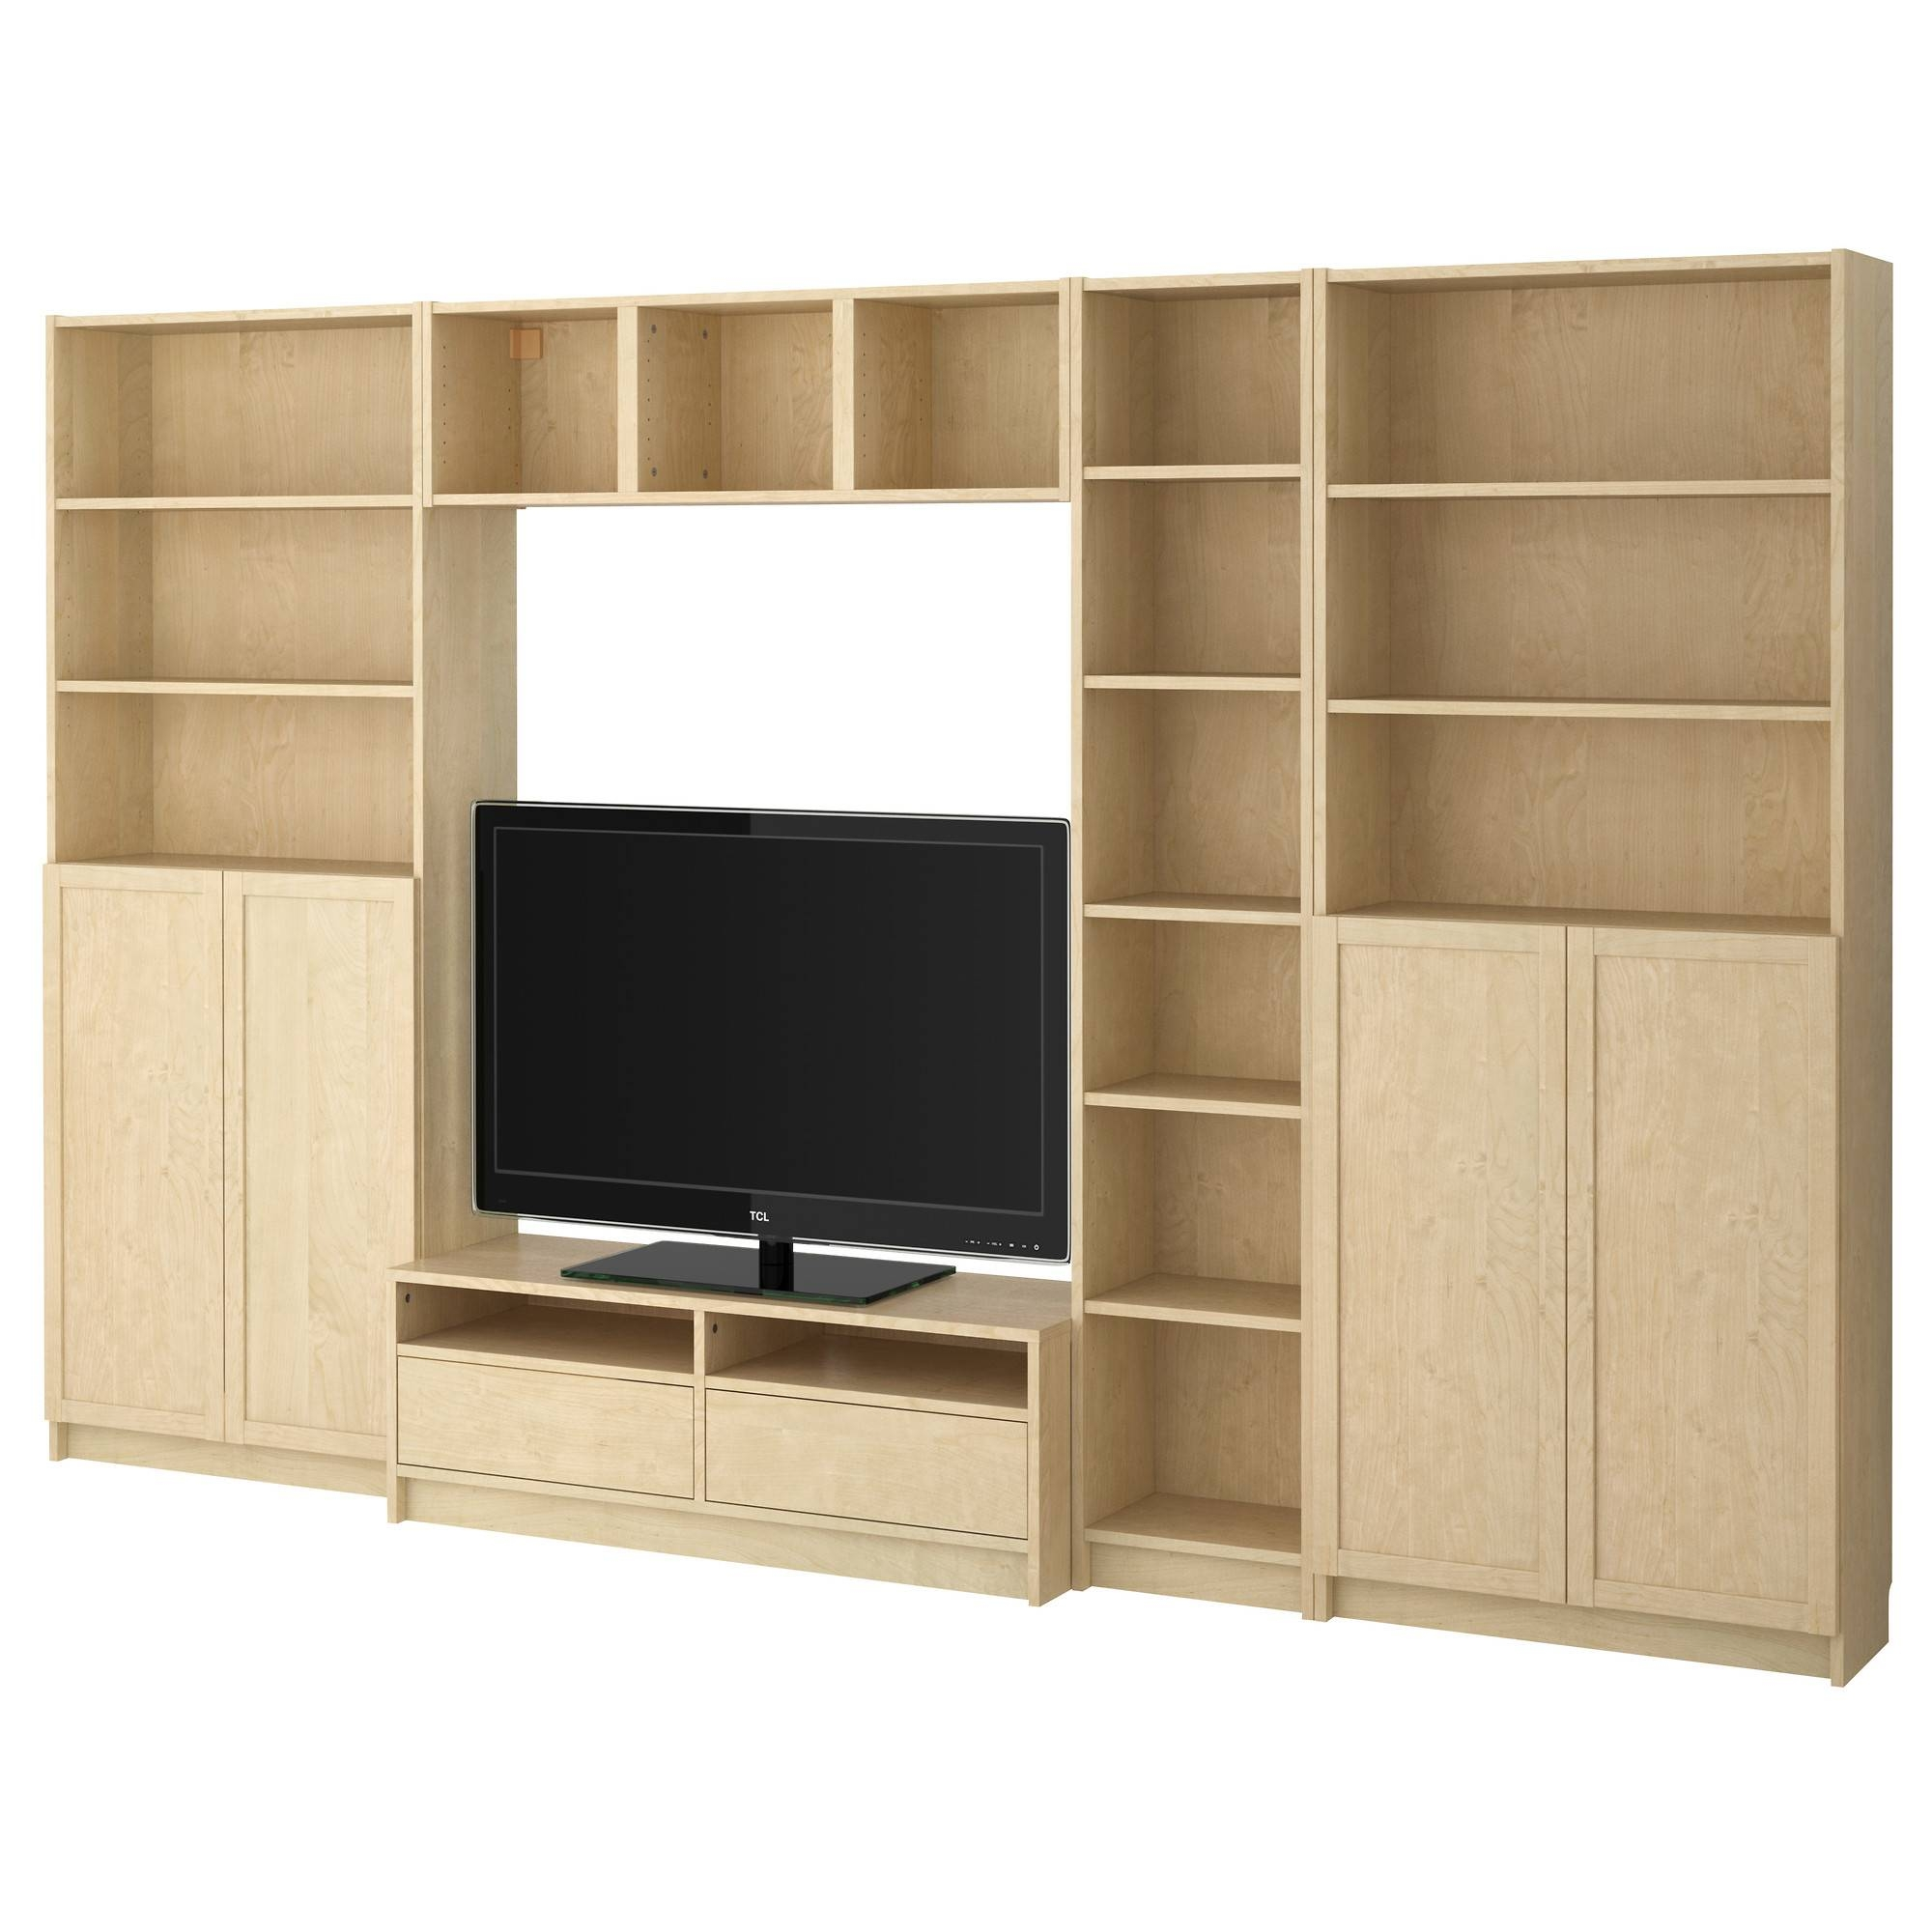 Furniture: Besta Tv Stand | Entertainment Centers Ikea | Tv Stands Within Birch Tv Stands (View 3 of 15)